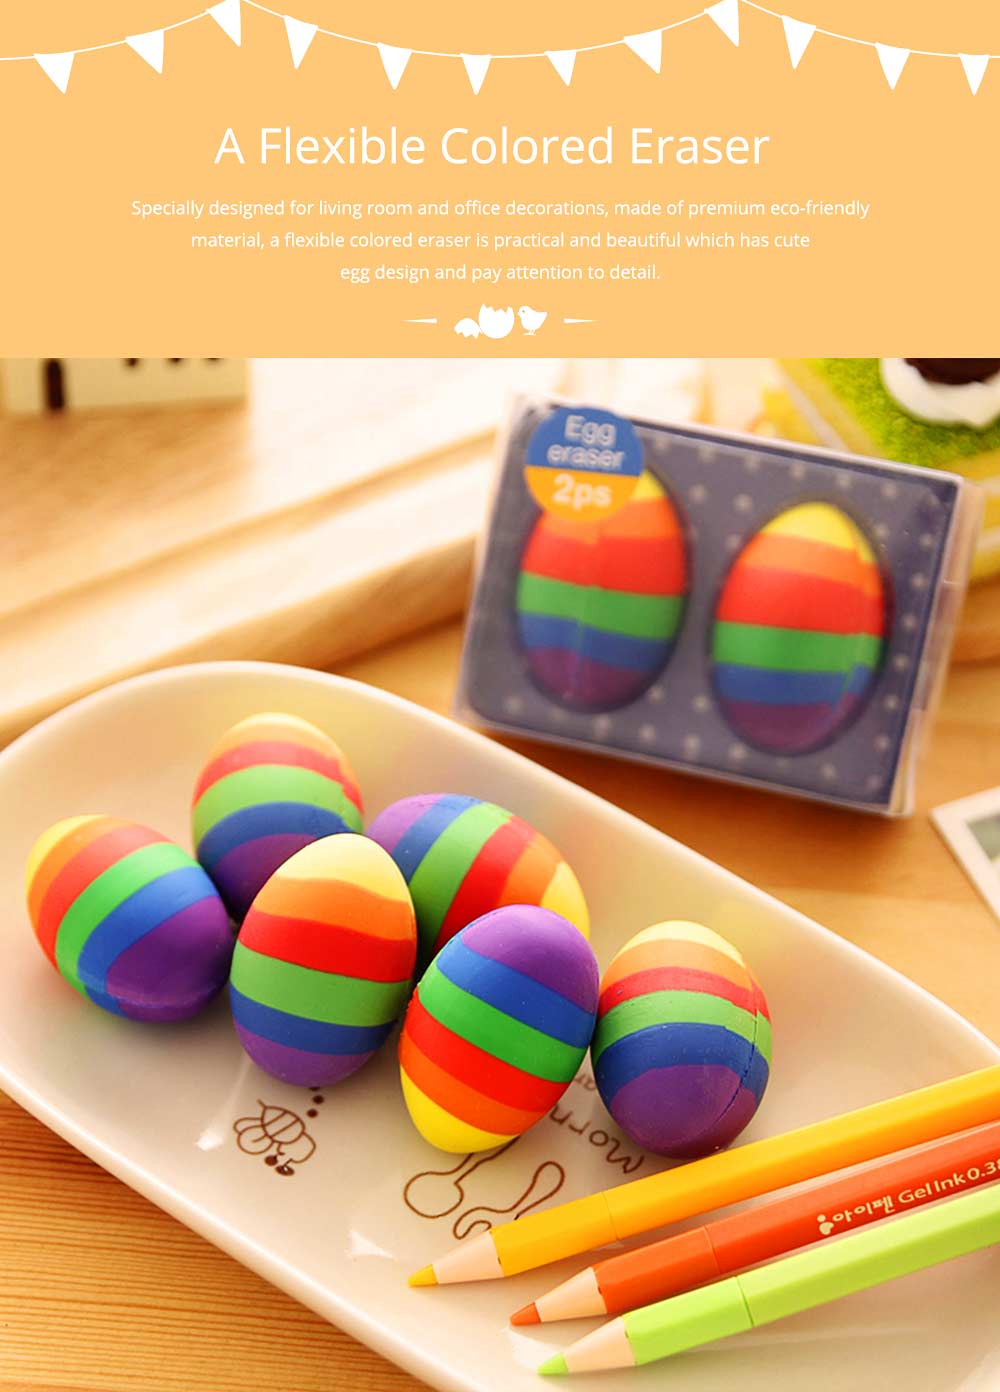 Fun Easter Gifts For Toddlers - Flexible Colored Eraser with Eggs Design, 2PCS 6